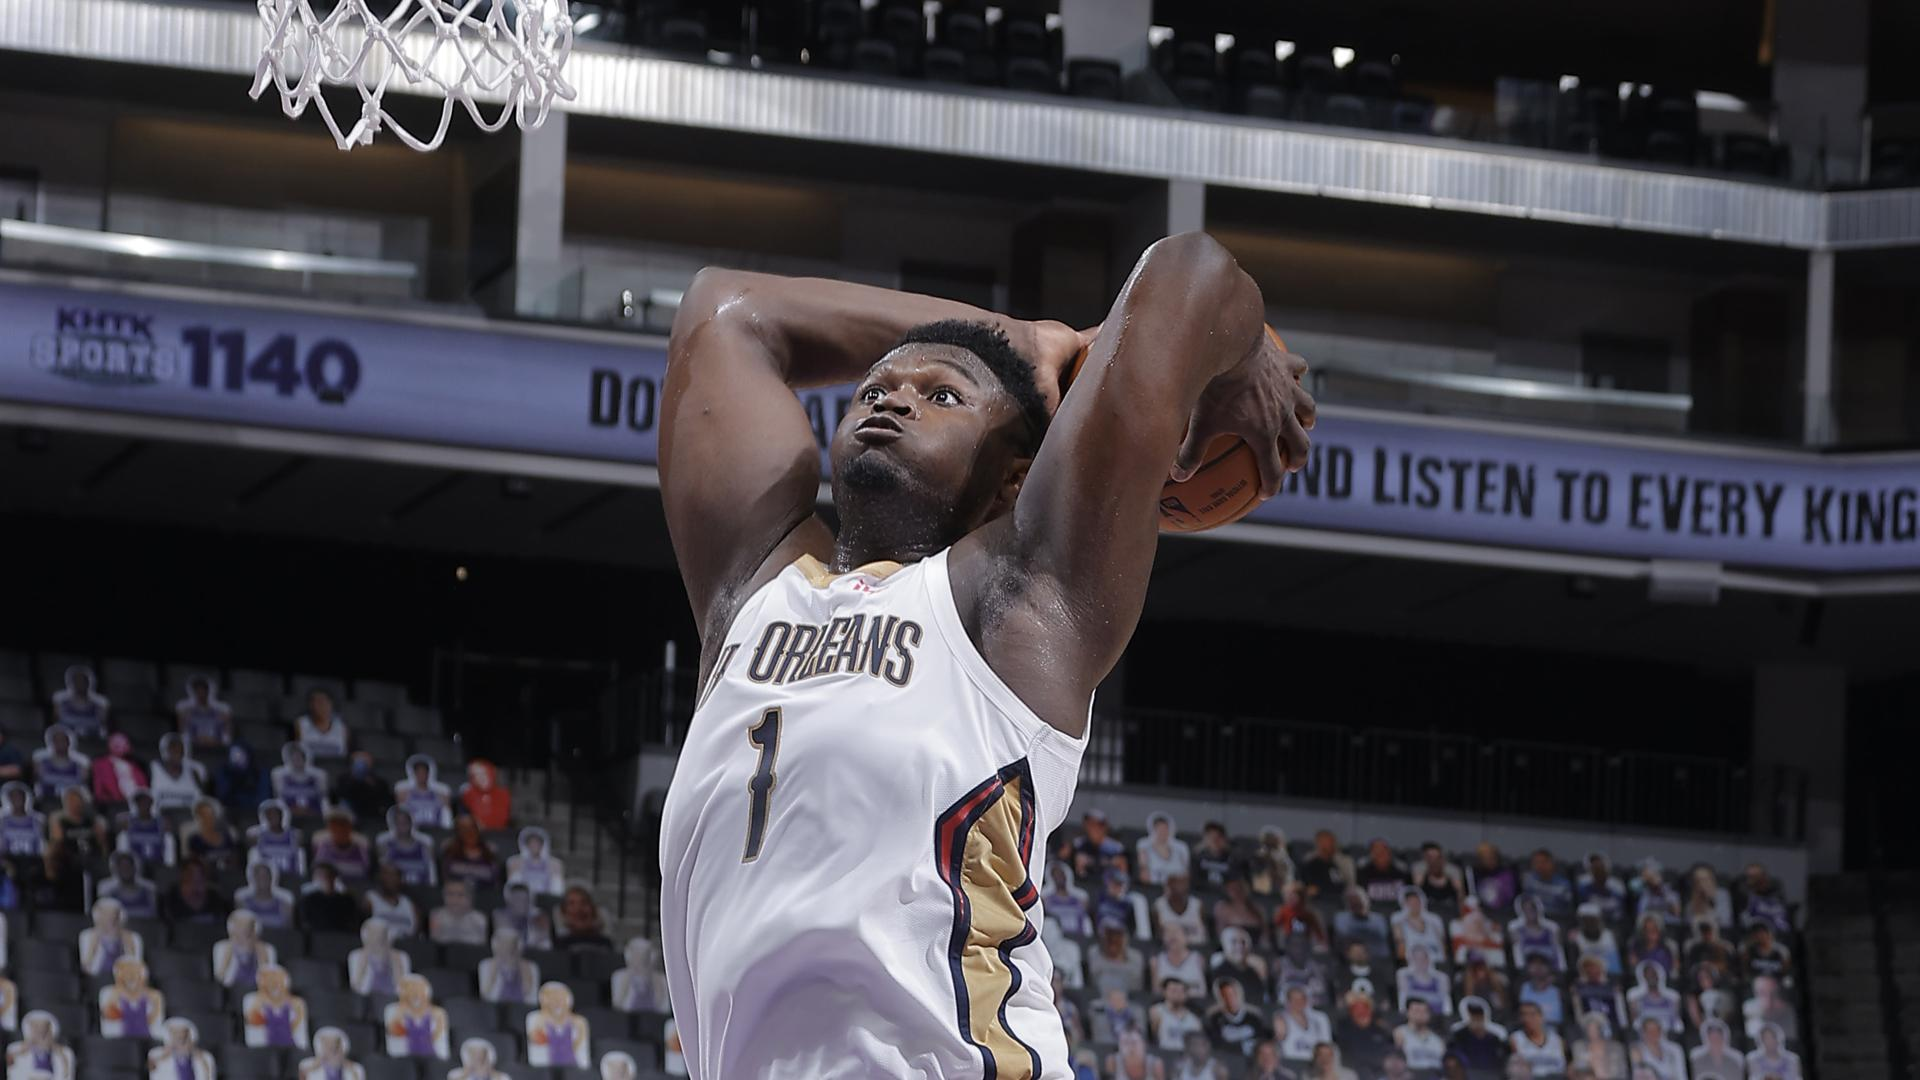 Pelicans Stat Leader Highlights: Zion Williamson leads Pelicans with 31 points vs. Kings